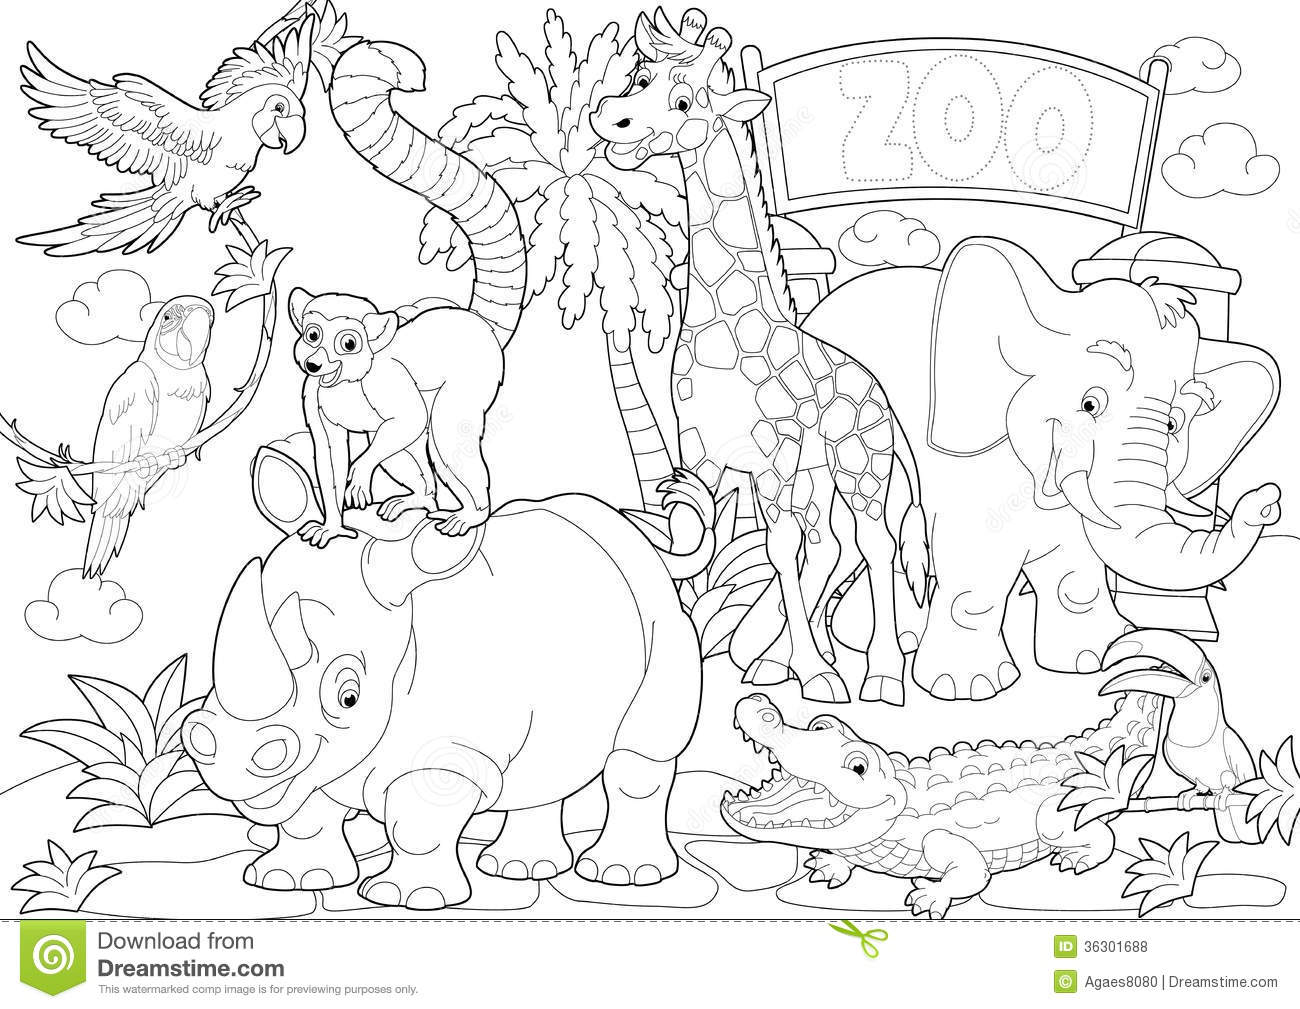 Coloring page zoo